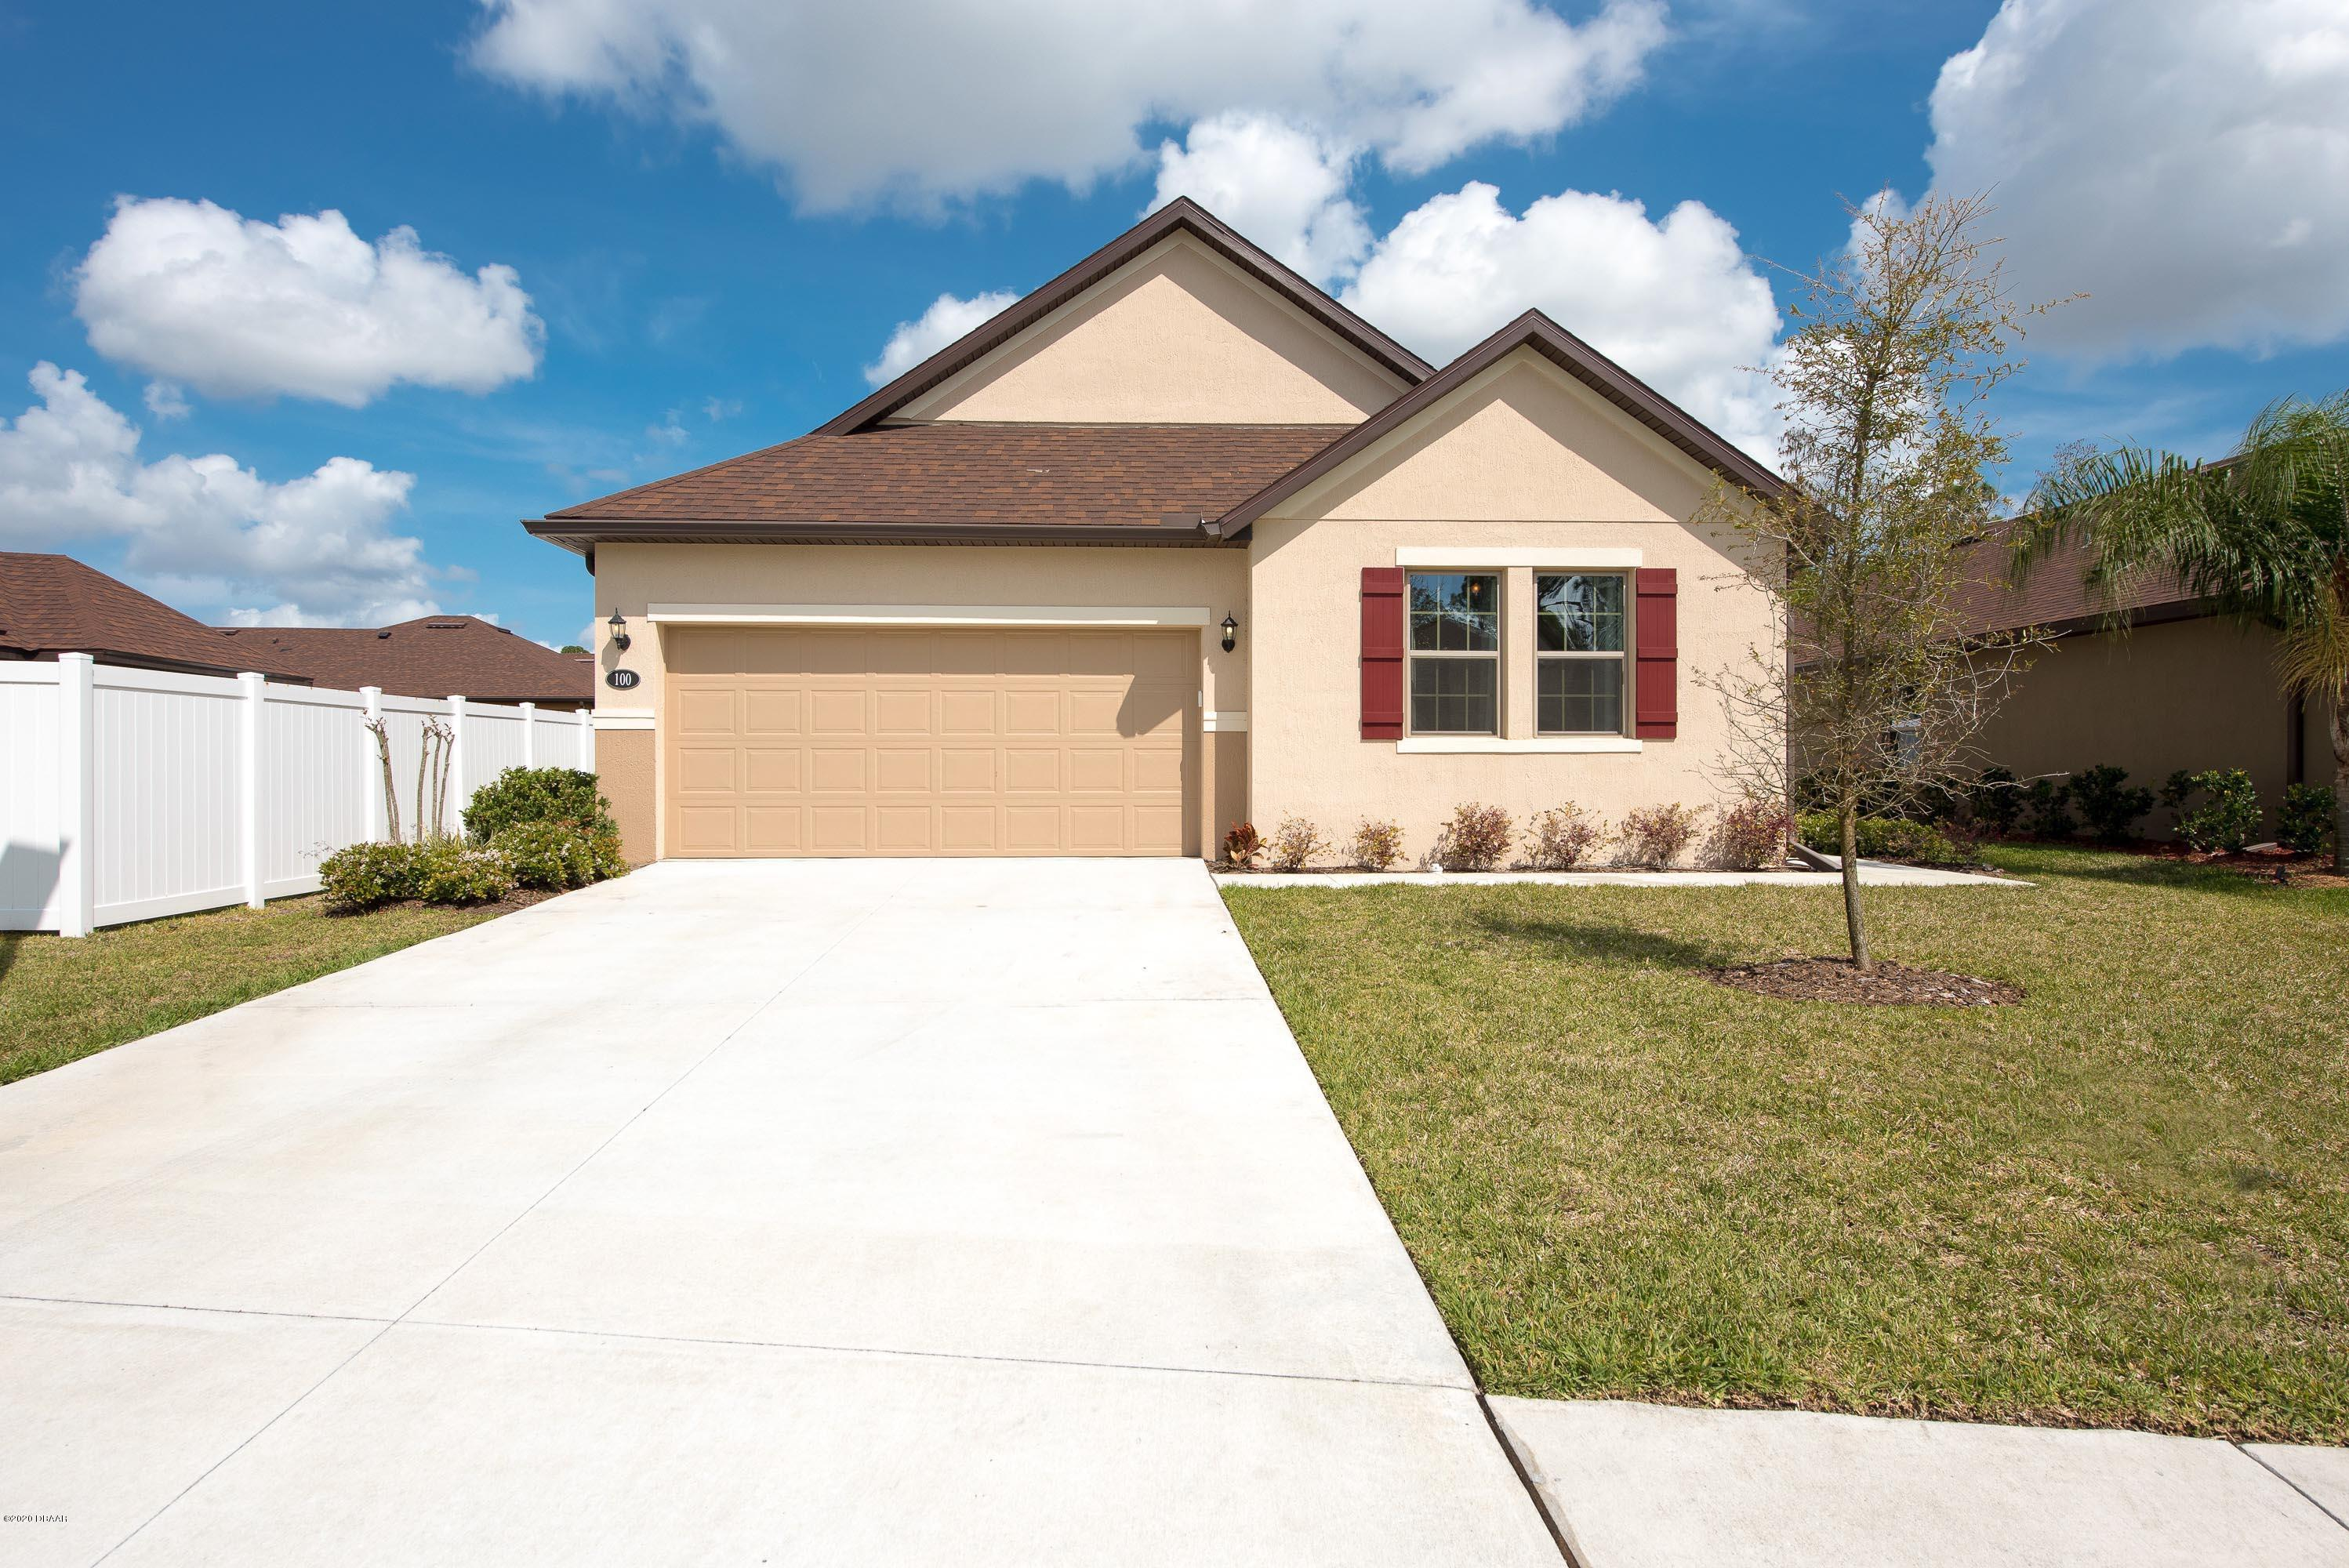 100 San Mardeen Court, one of homes for sale in Holly Hill